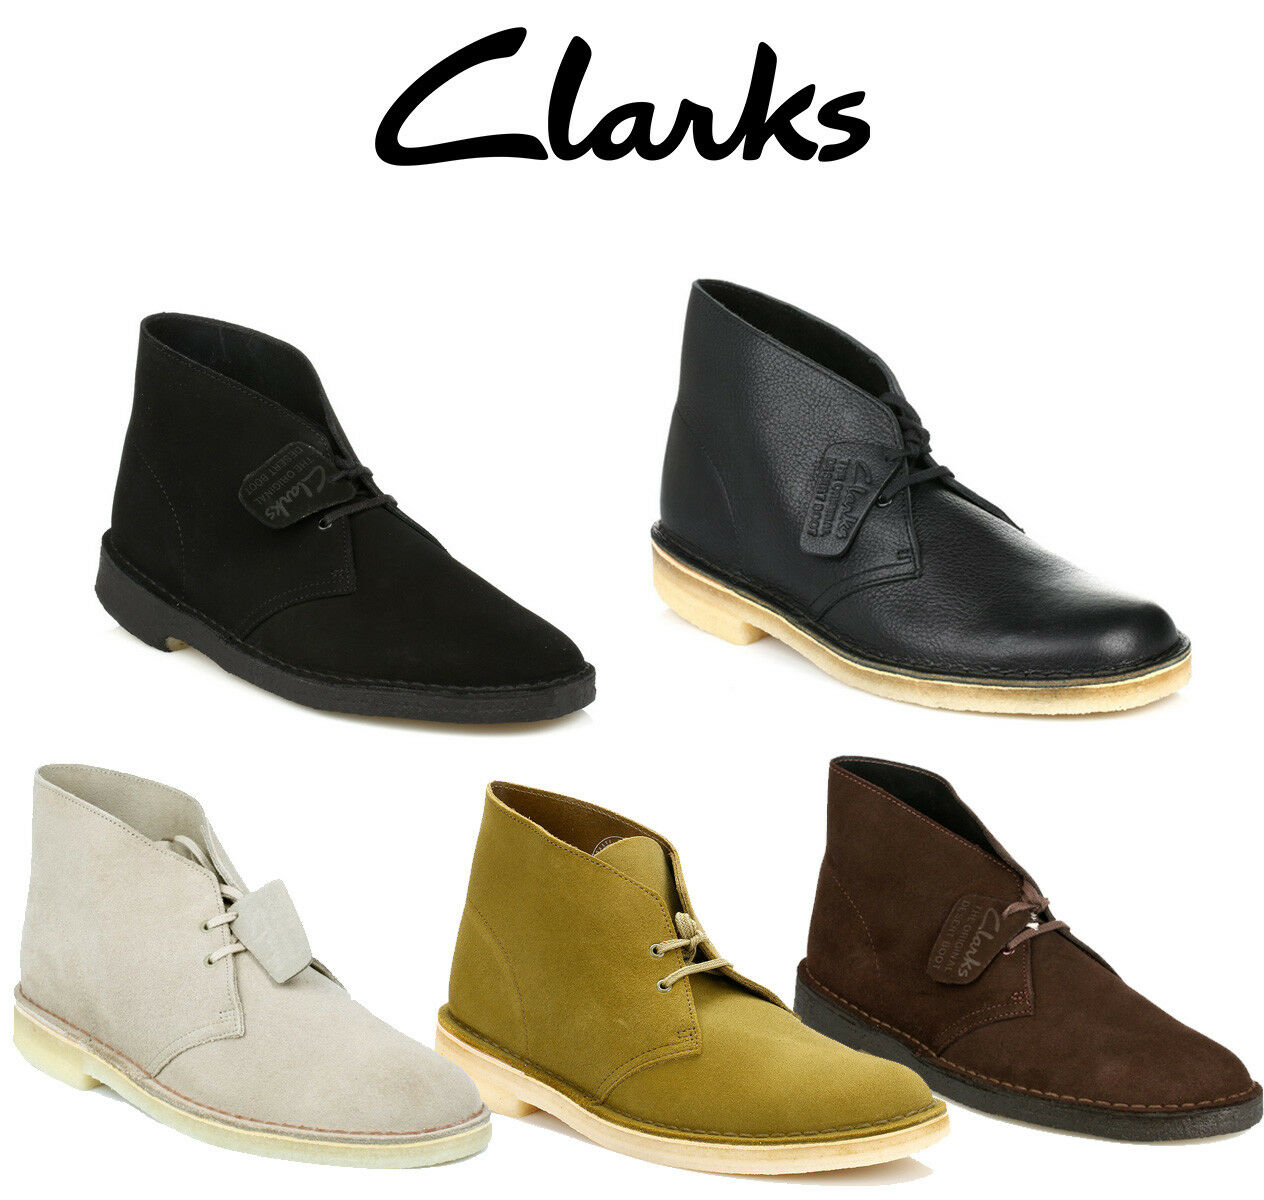 Clarks Mens Original Desert Boots, 5 Colours, Leather or Suede, Casual Shoes